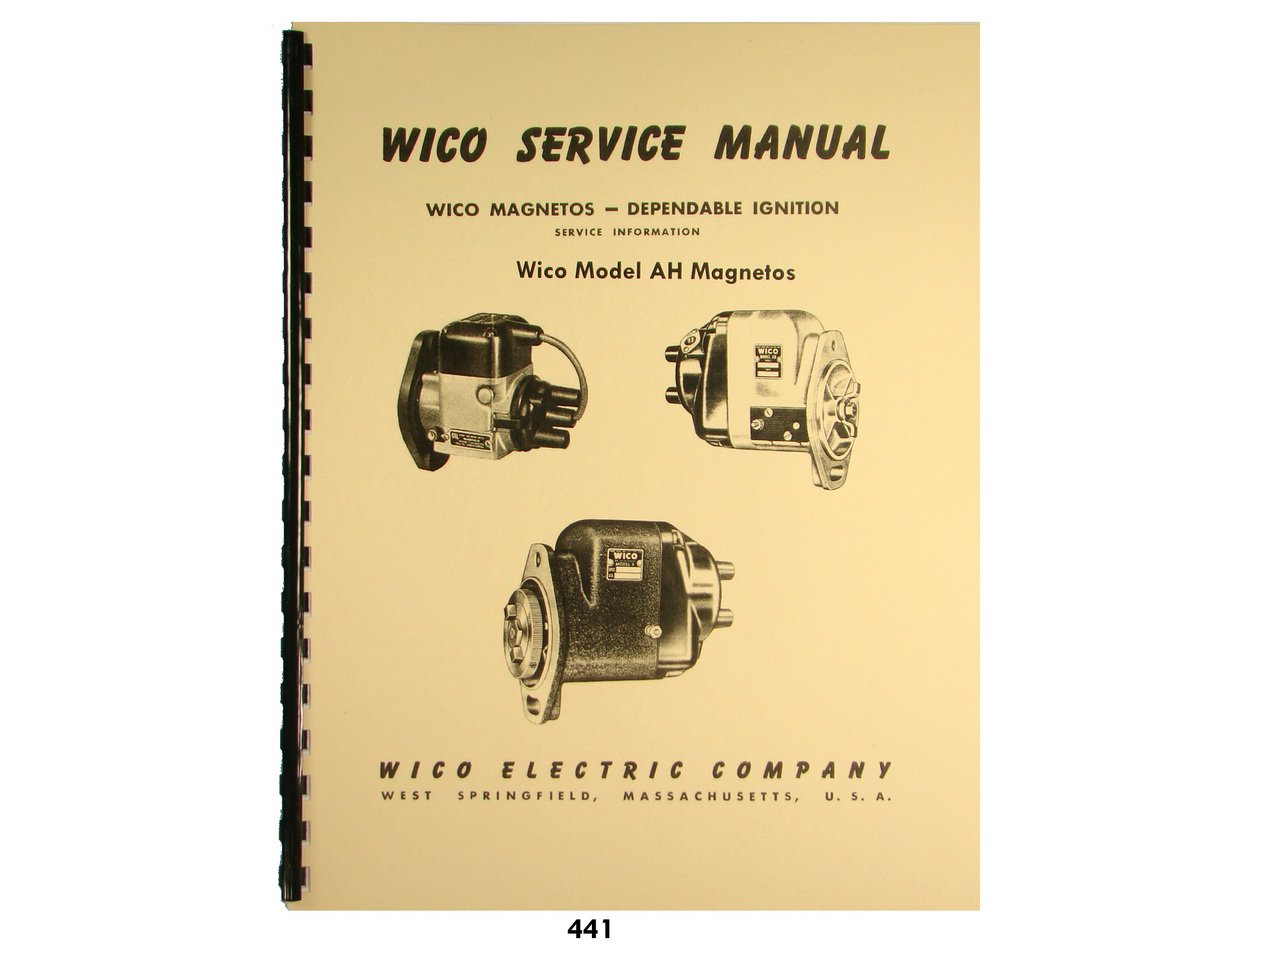 Wico Magneto Wiring Schematic - 2005 Ford F 150 Wiring Diagram Free -  ct90.tukune.jeanjaures37.fr   Wilco Magneto Wiring Schematic      Wiring Diagram Resource